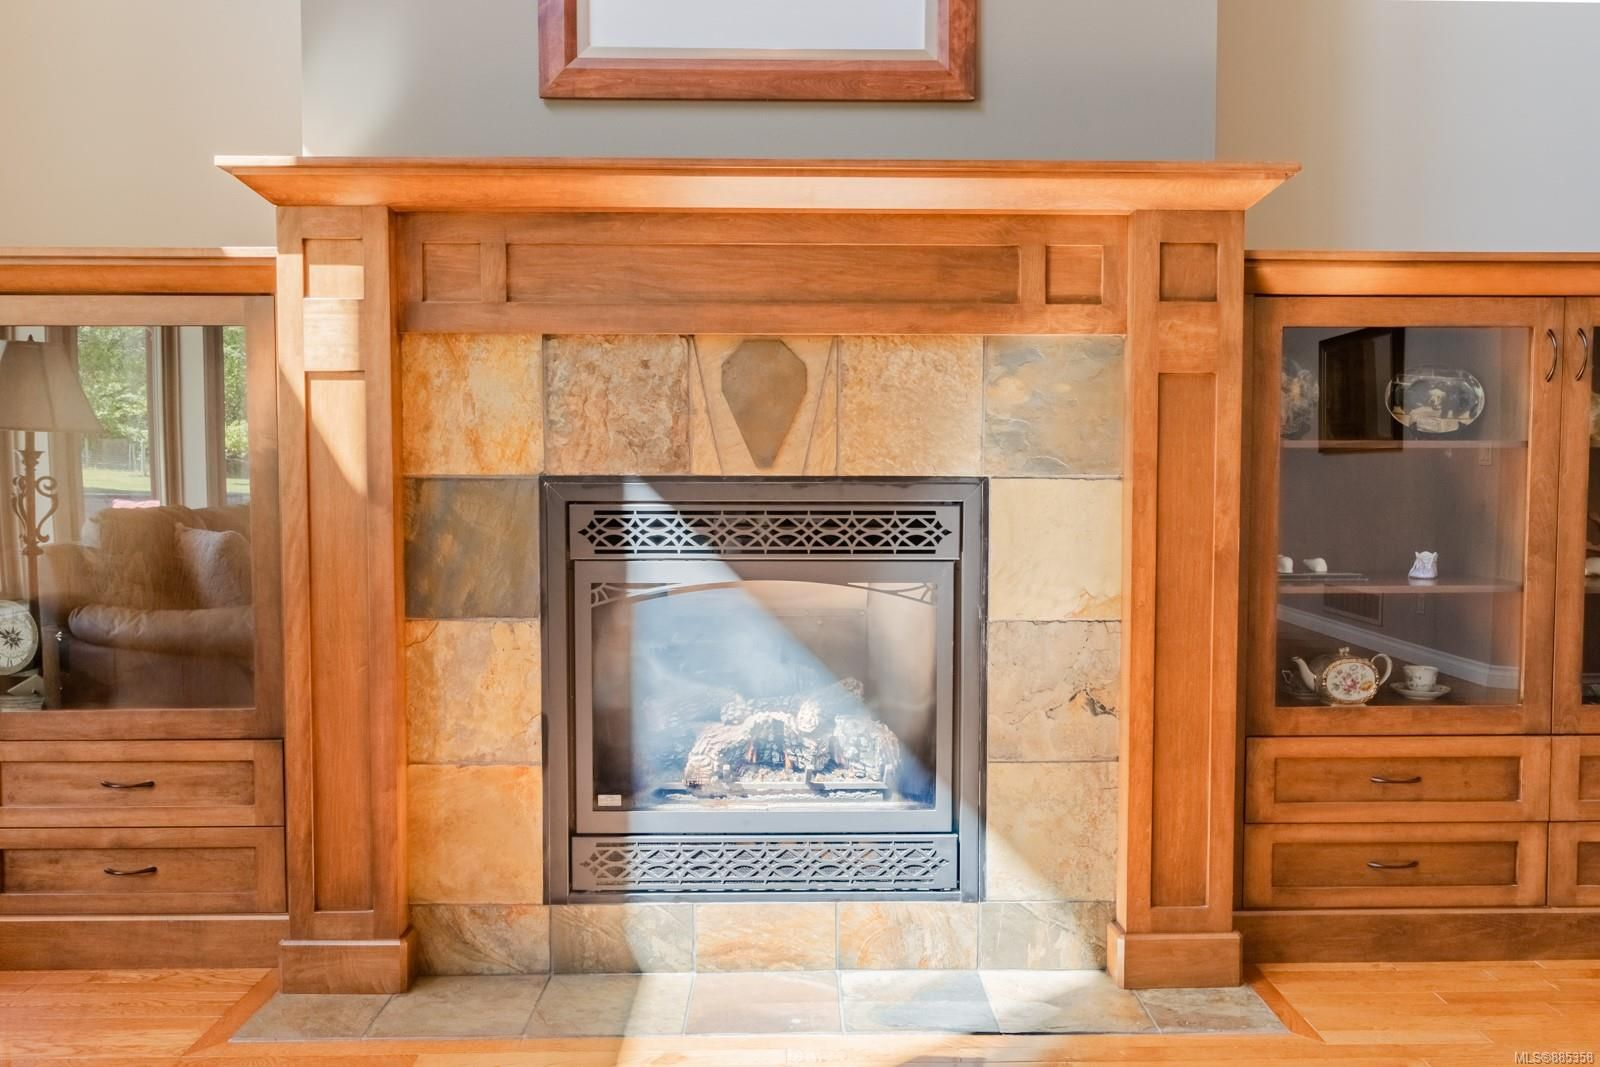 Photo 16: Photos: 2850 Peters Rd in : PQ Qualicum Beach House for sale (Parksville/Qualicum)  : MLS®# 885358